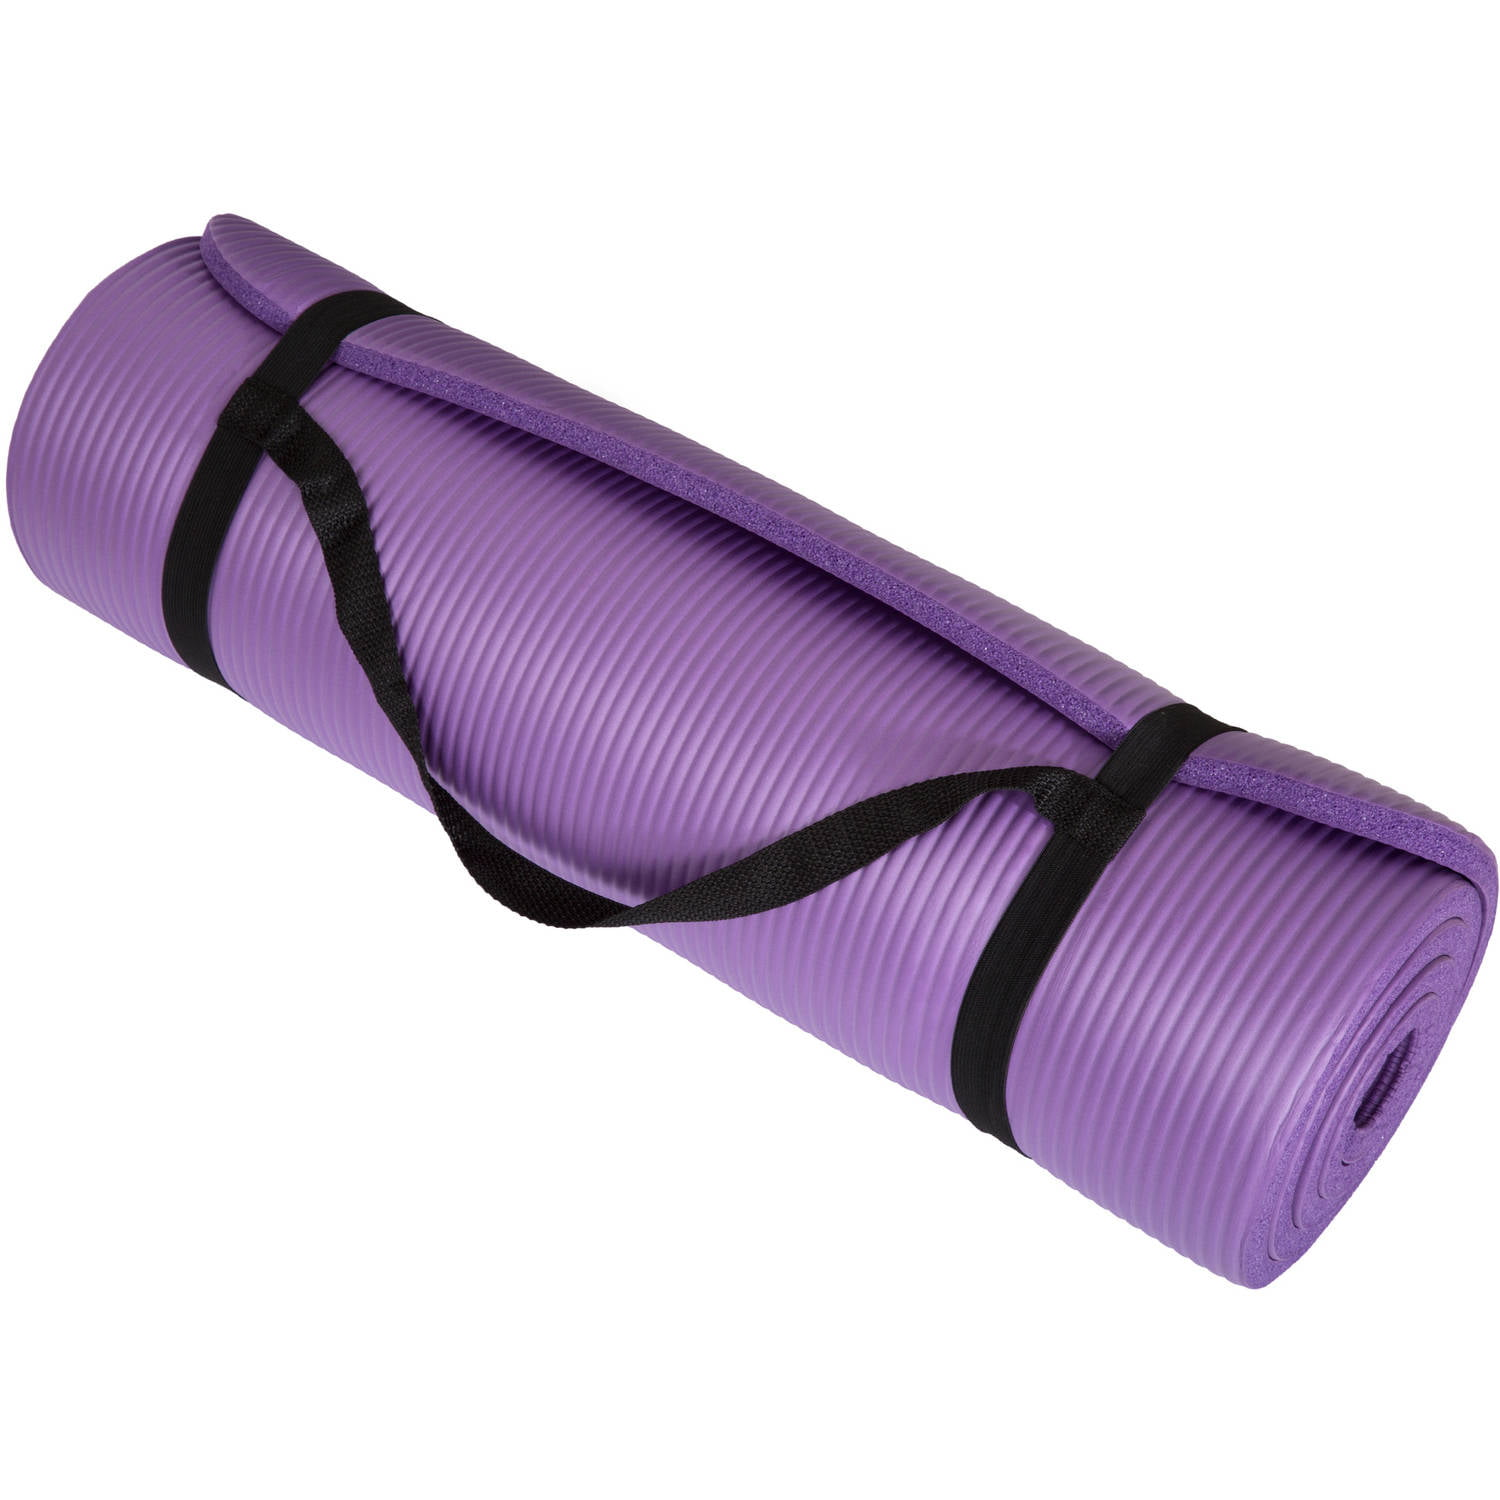 Wakeman Fitness Extra Thick Yoga Exercise Mat Available in Various